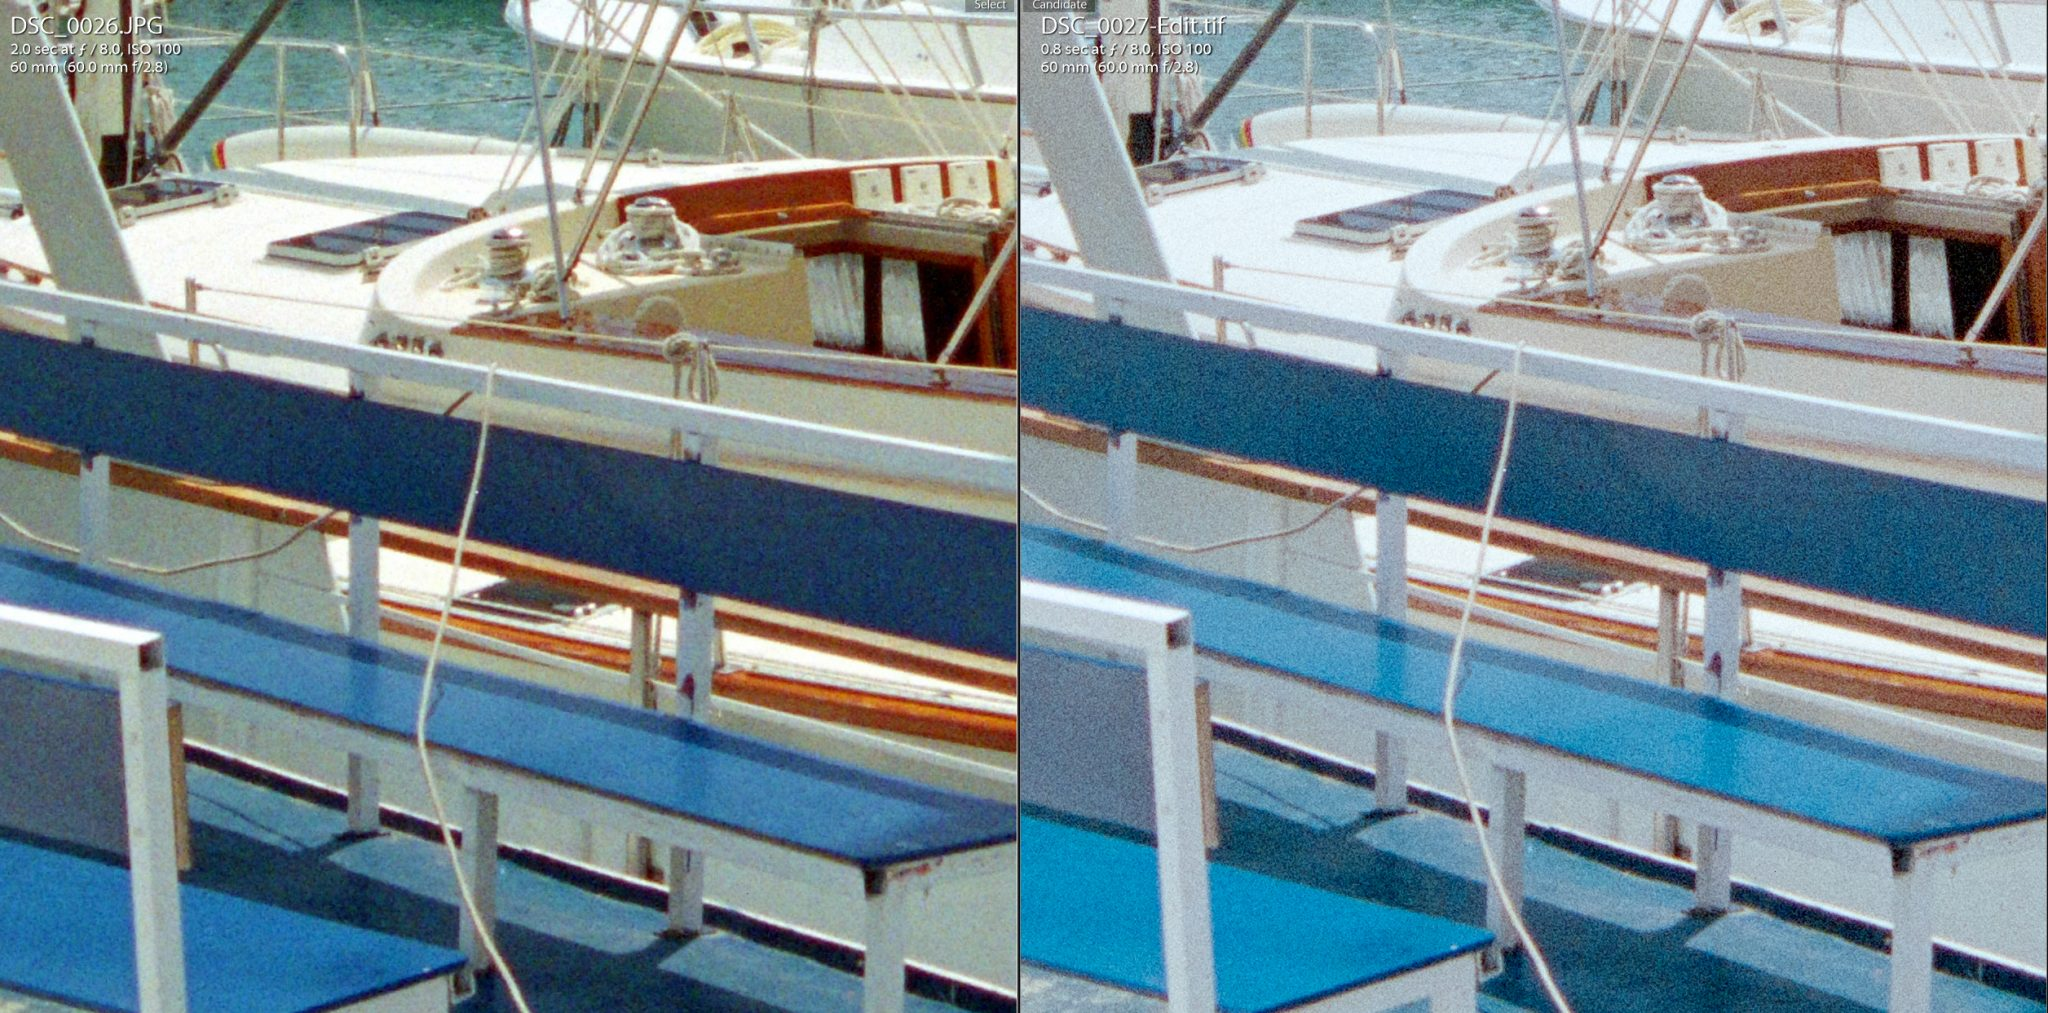 Comparison of Digitized and Photoshopped conversion of film